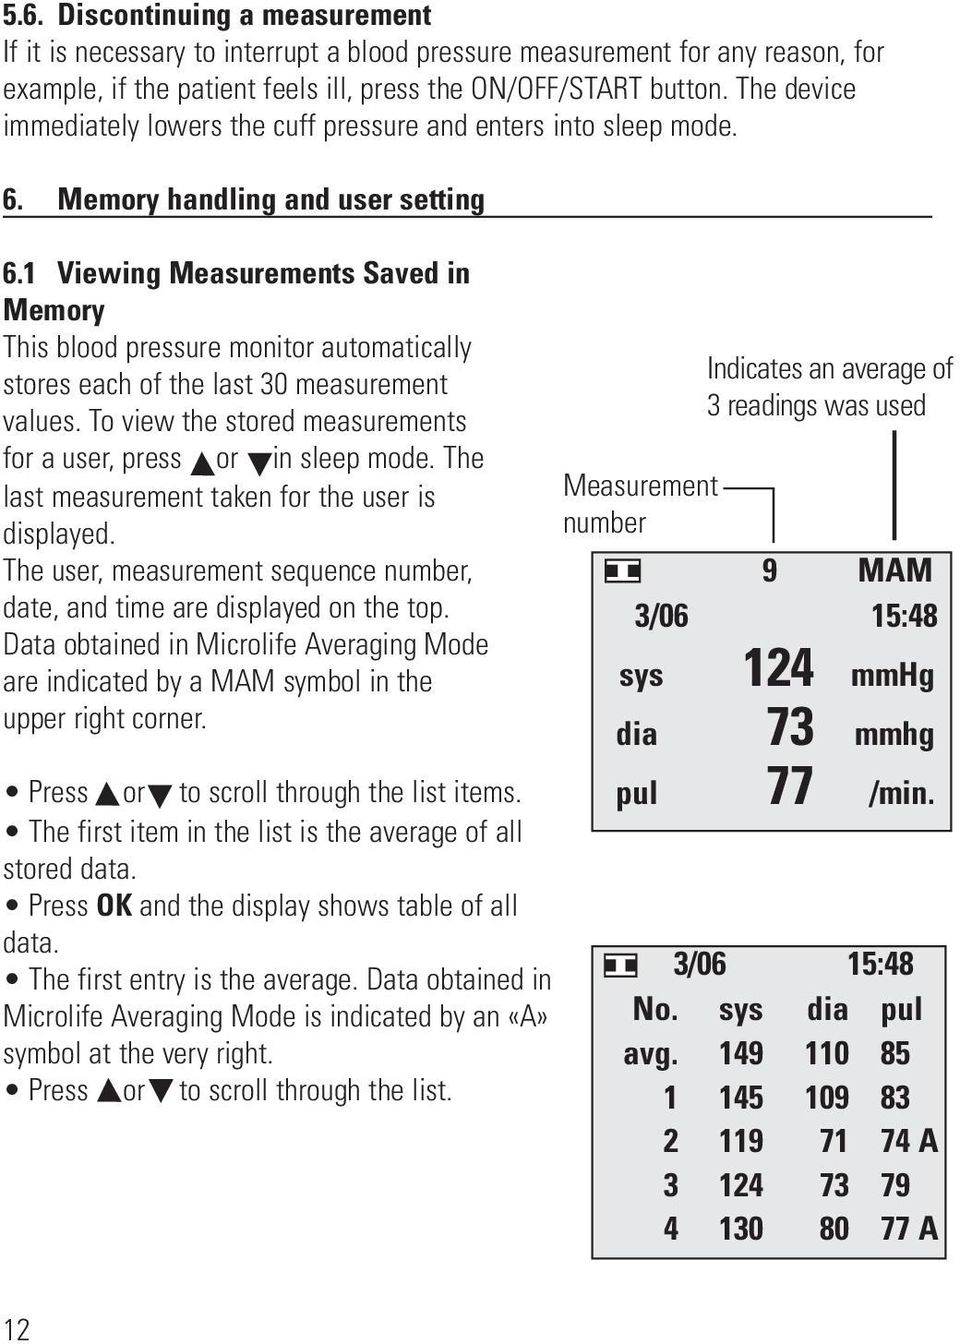 1 Viewing Measurements Saved in Memory This blood pressure monitor automatically stores each of the last 30 measurement values. To view the stored measurements for a user, press or in sleep mode.